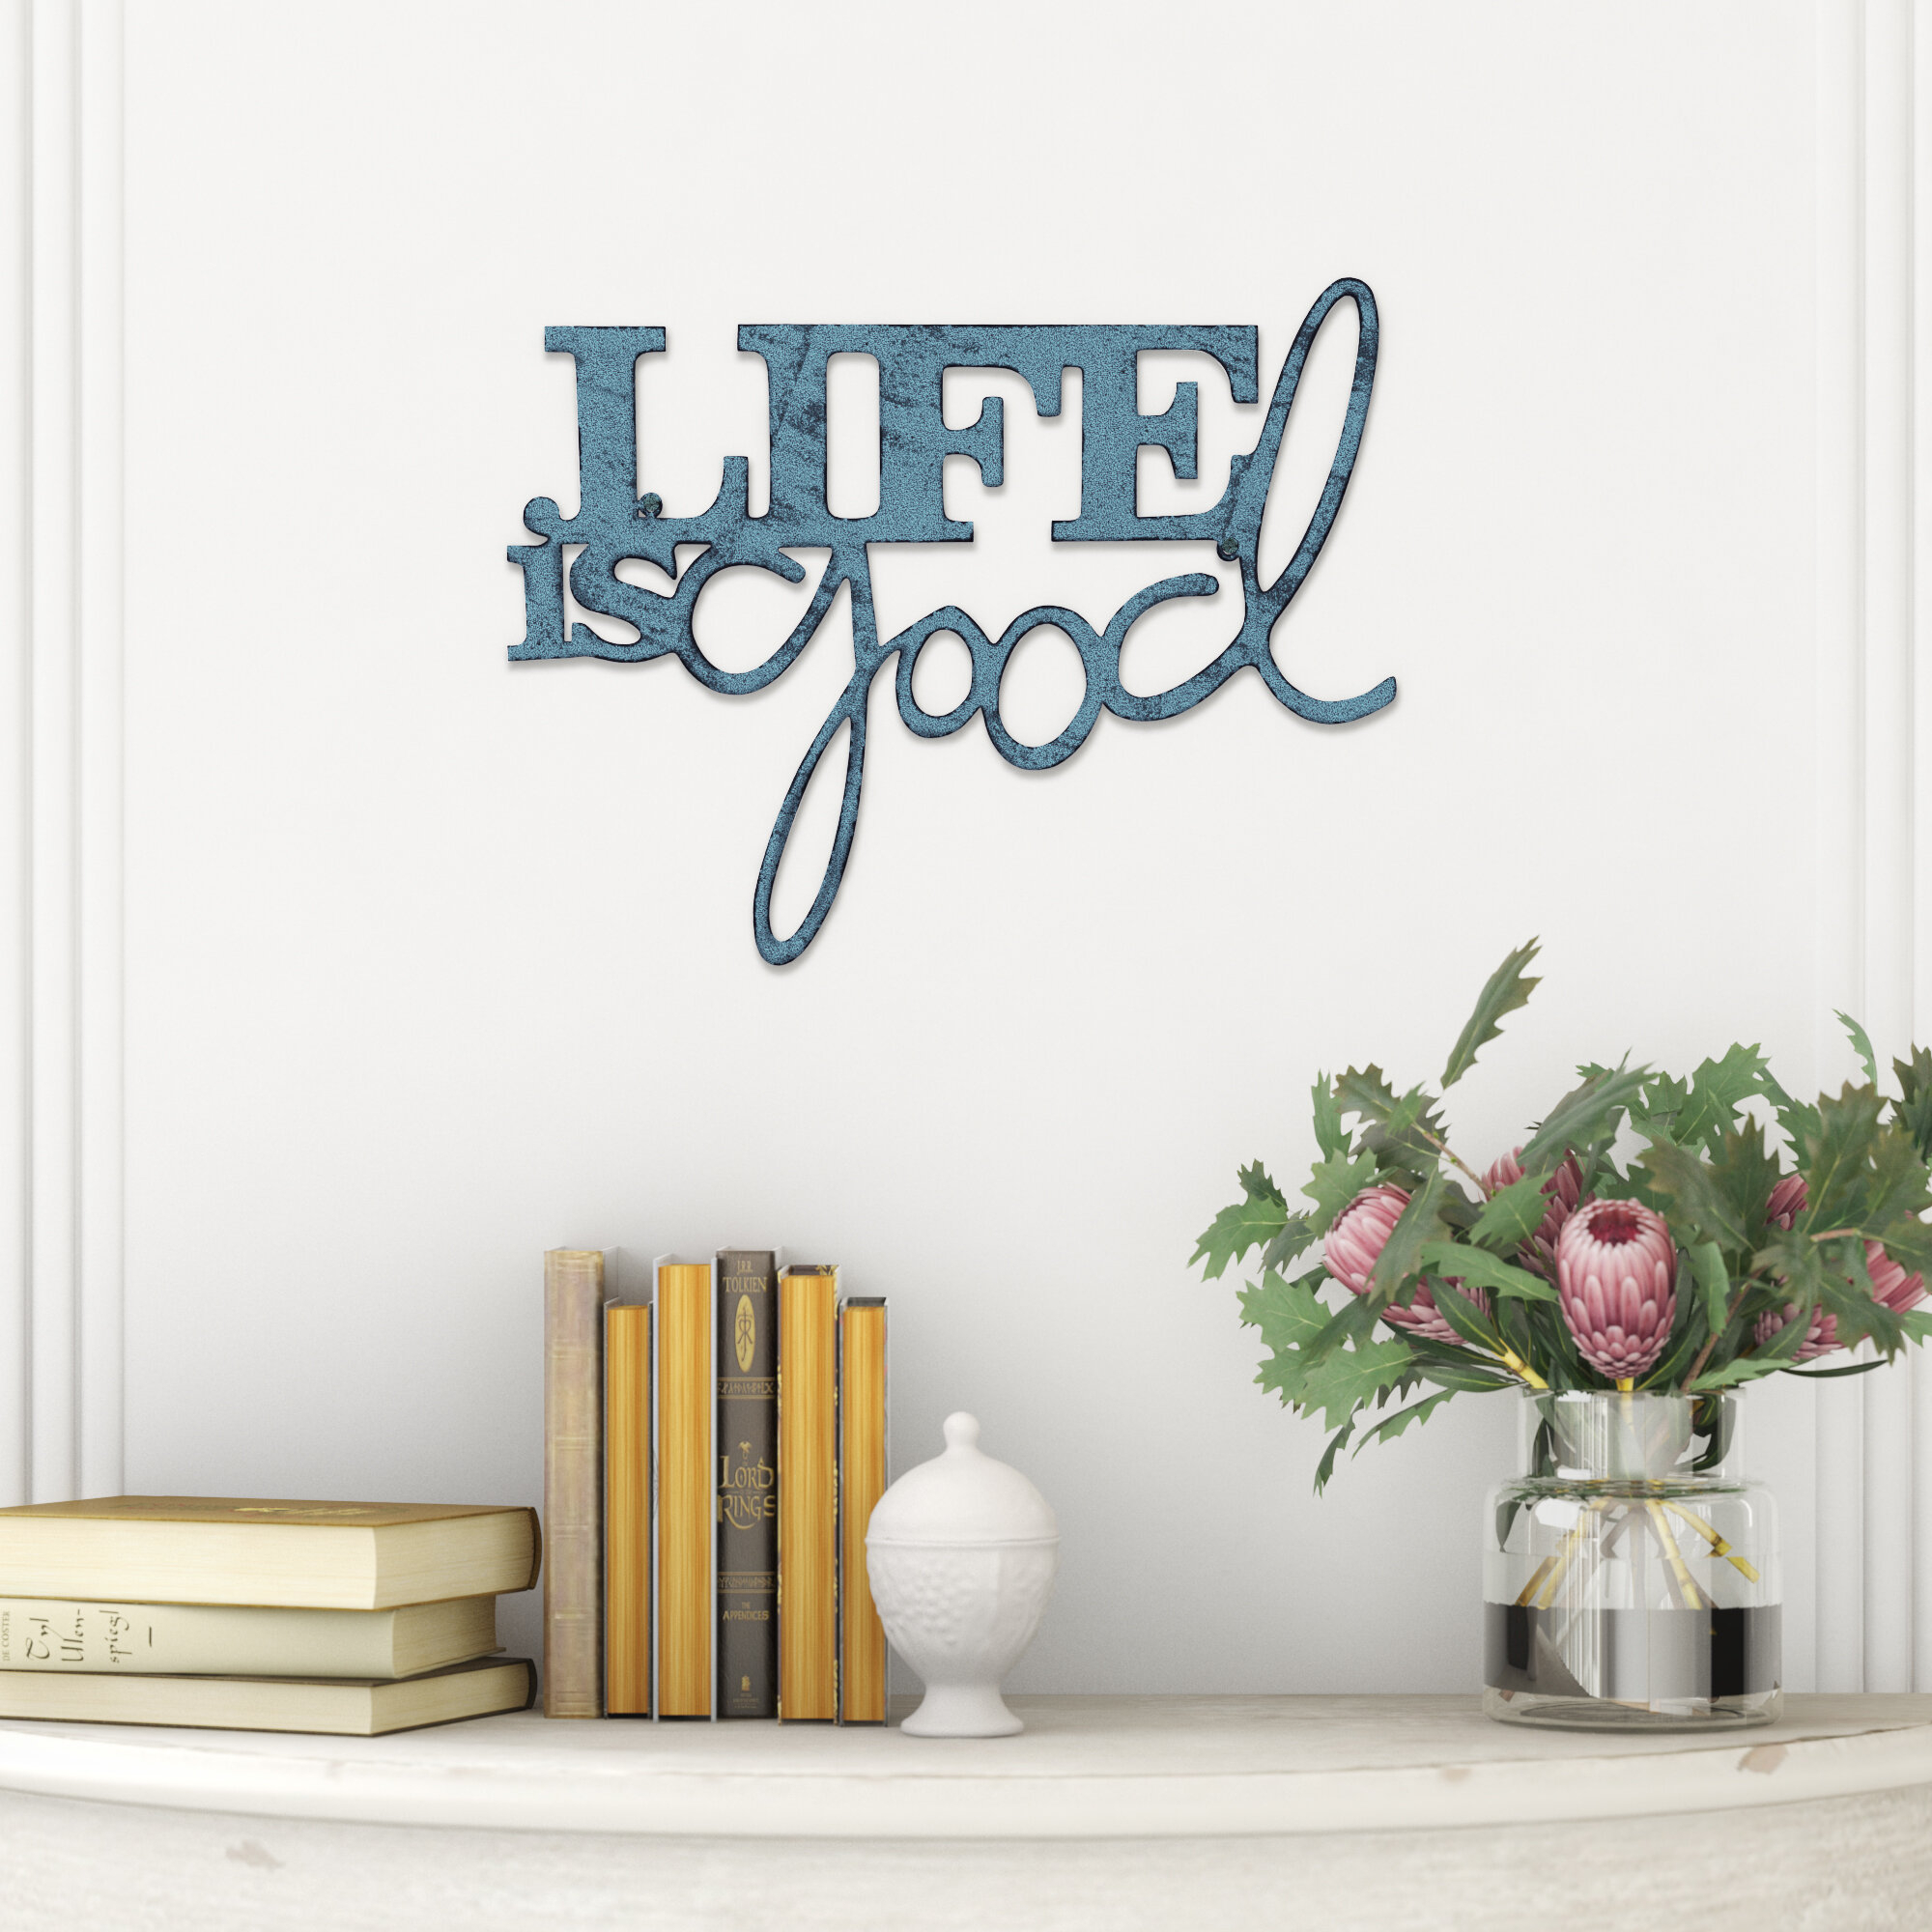 Fashionable Metal Laundry Room Wall Decor By Winston Porter Within Life Is Good Metal Wall Décor (View 5 of 20)